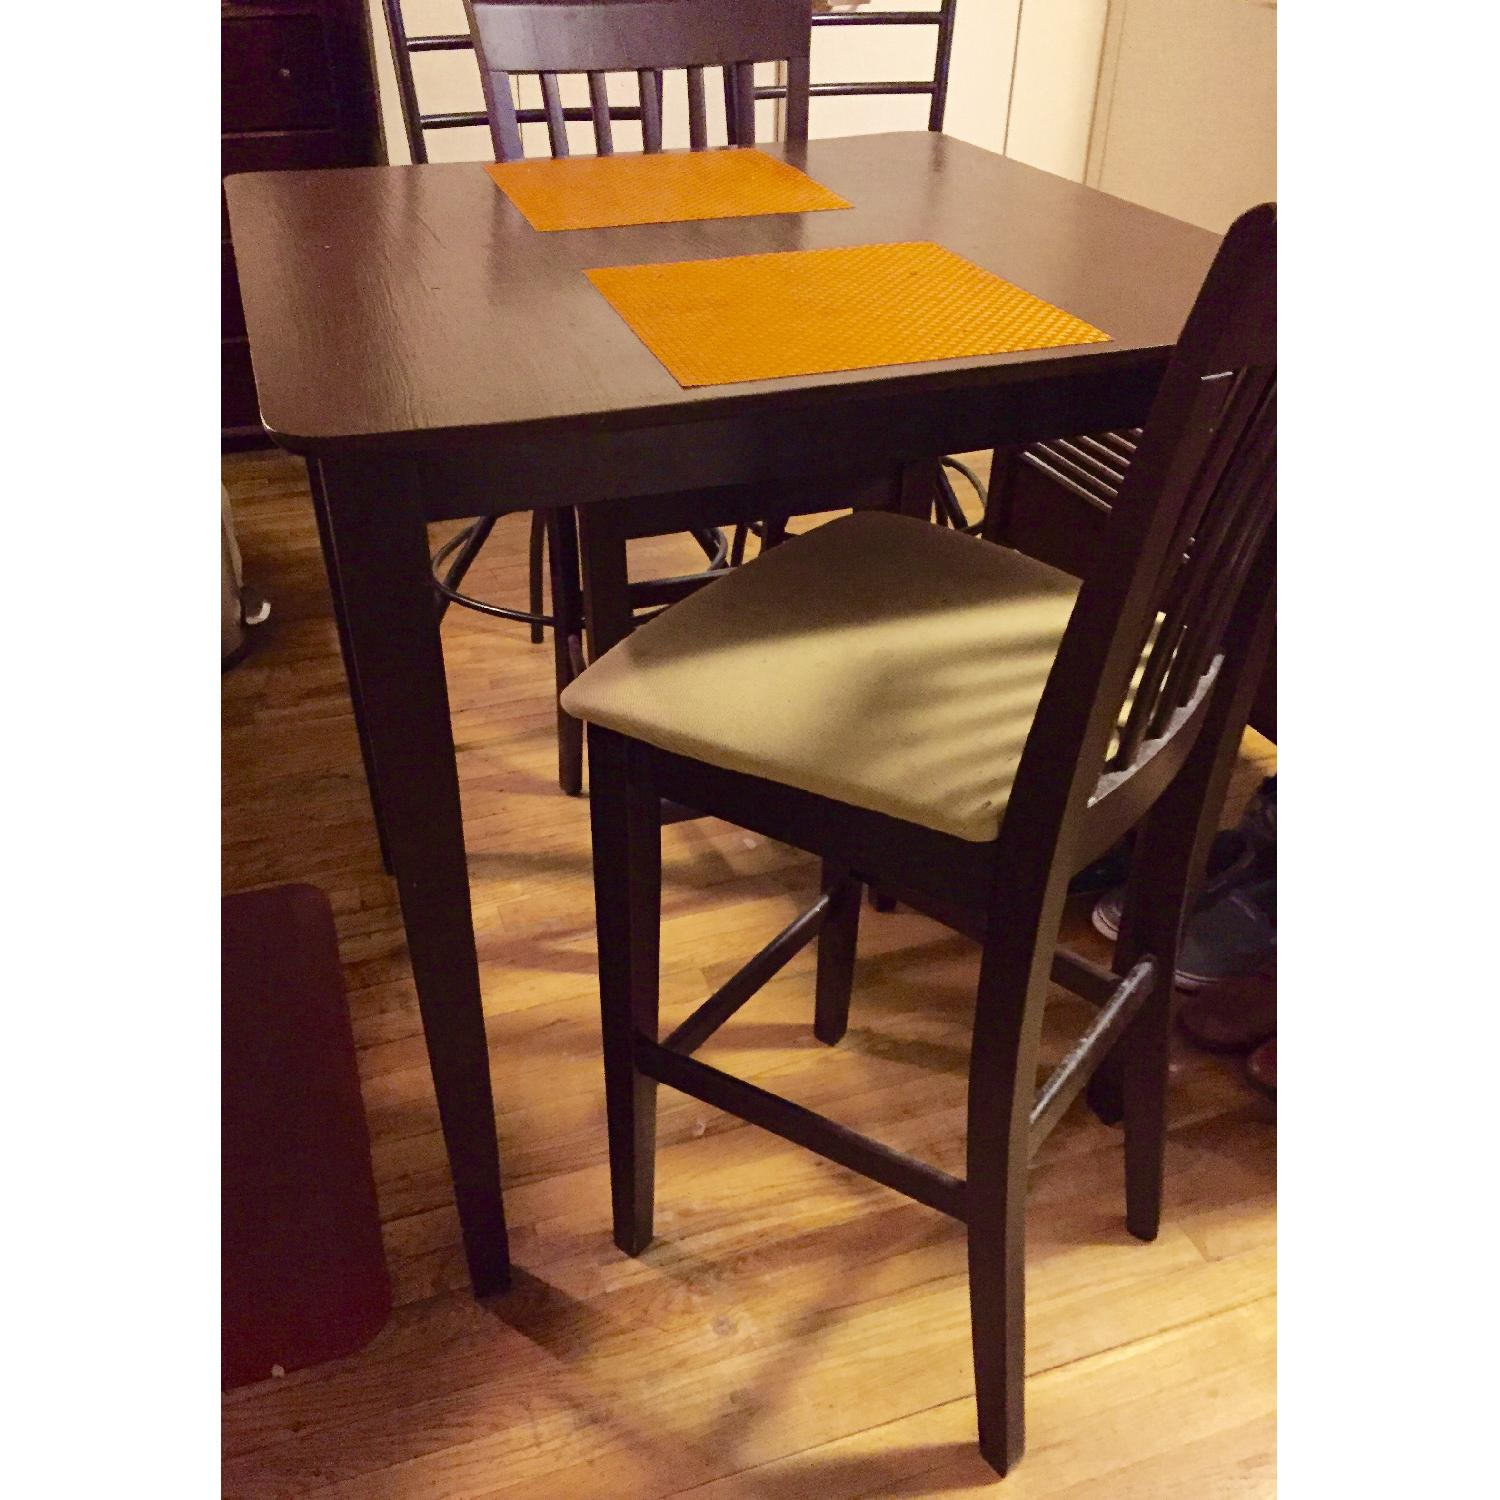 Dining/Pub Table w/ 2 Chairs - image-2